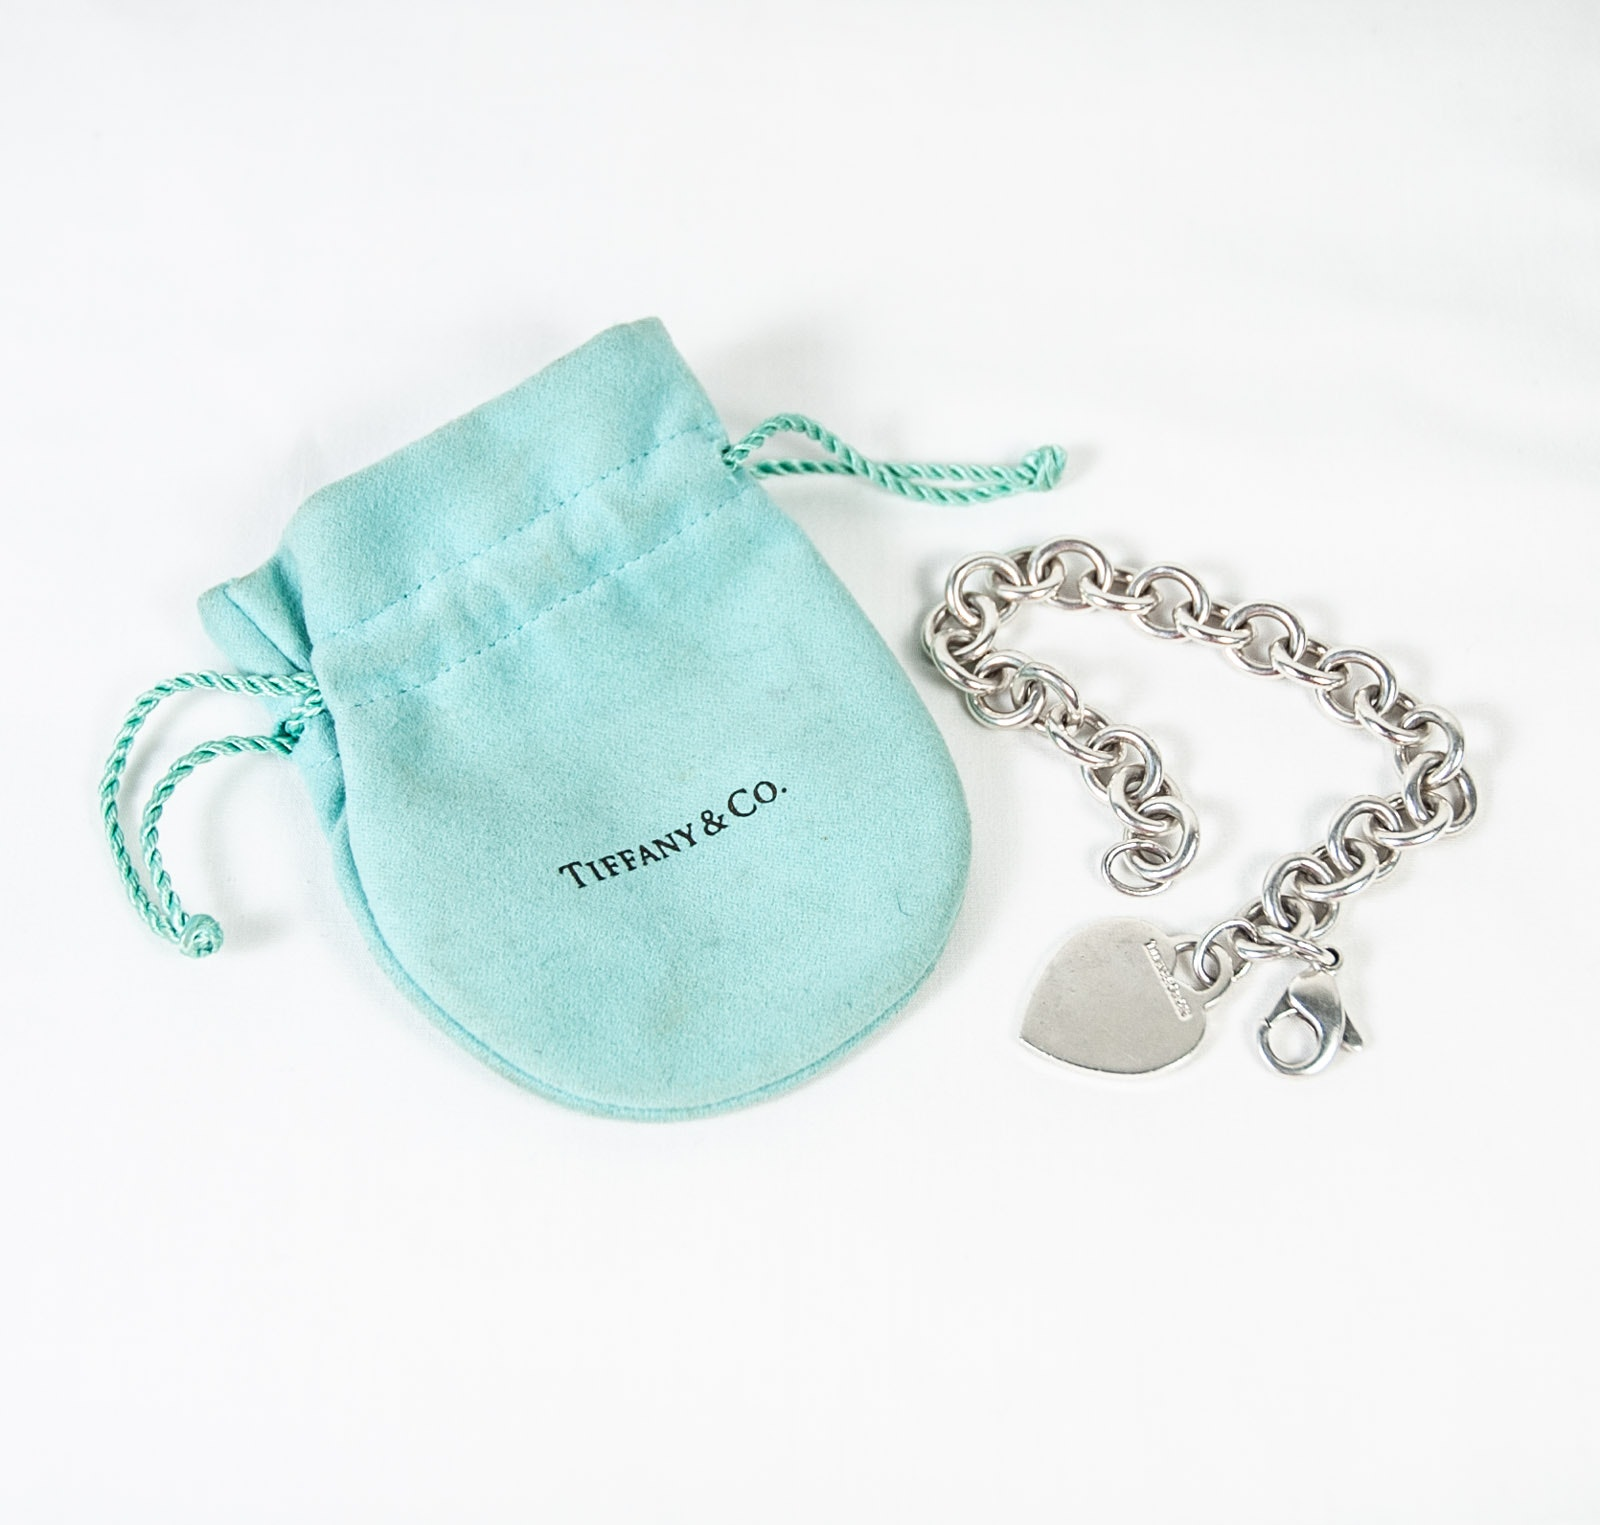 Tiffany & Co. Sterling Silver Heart Charm Bracelet